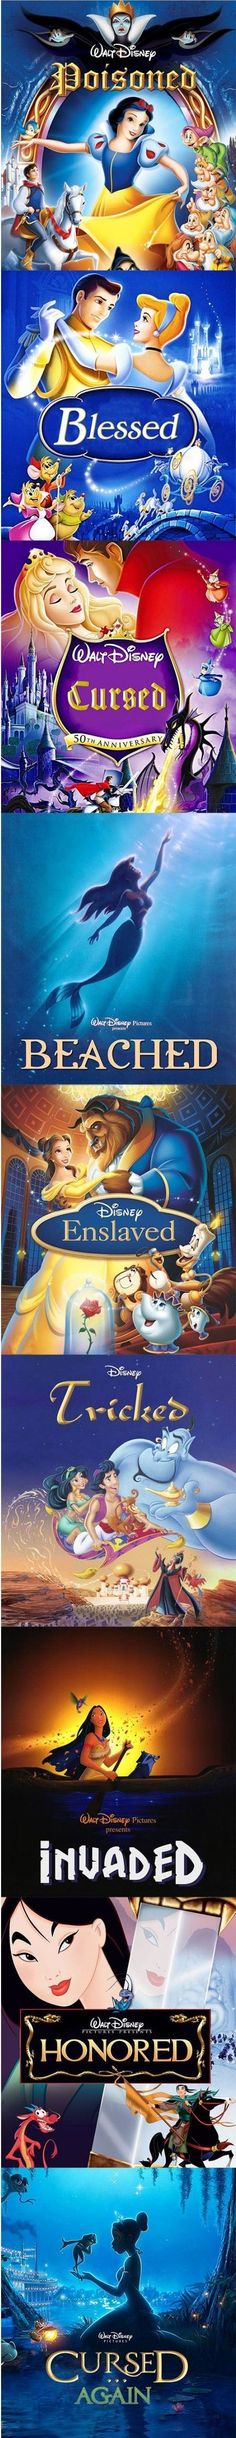 If the old Disney Princess movies went with the trend of using adjectives for the title.